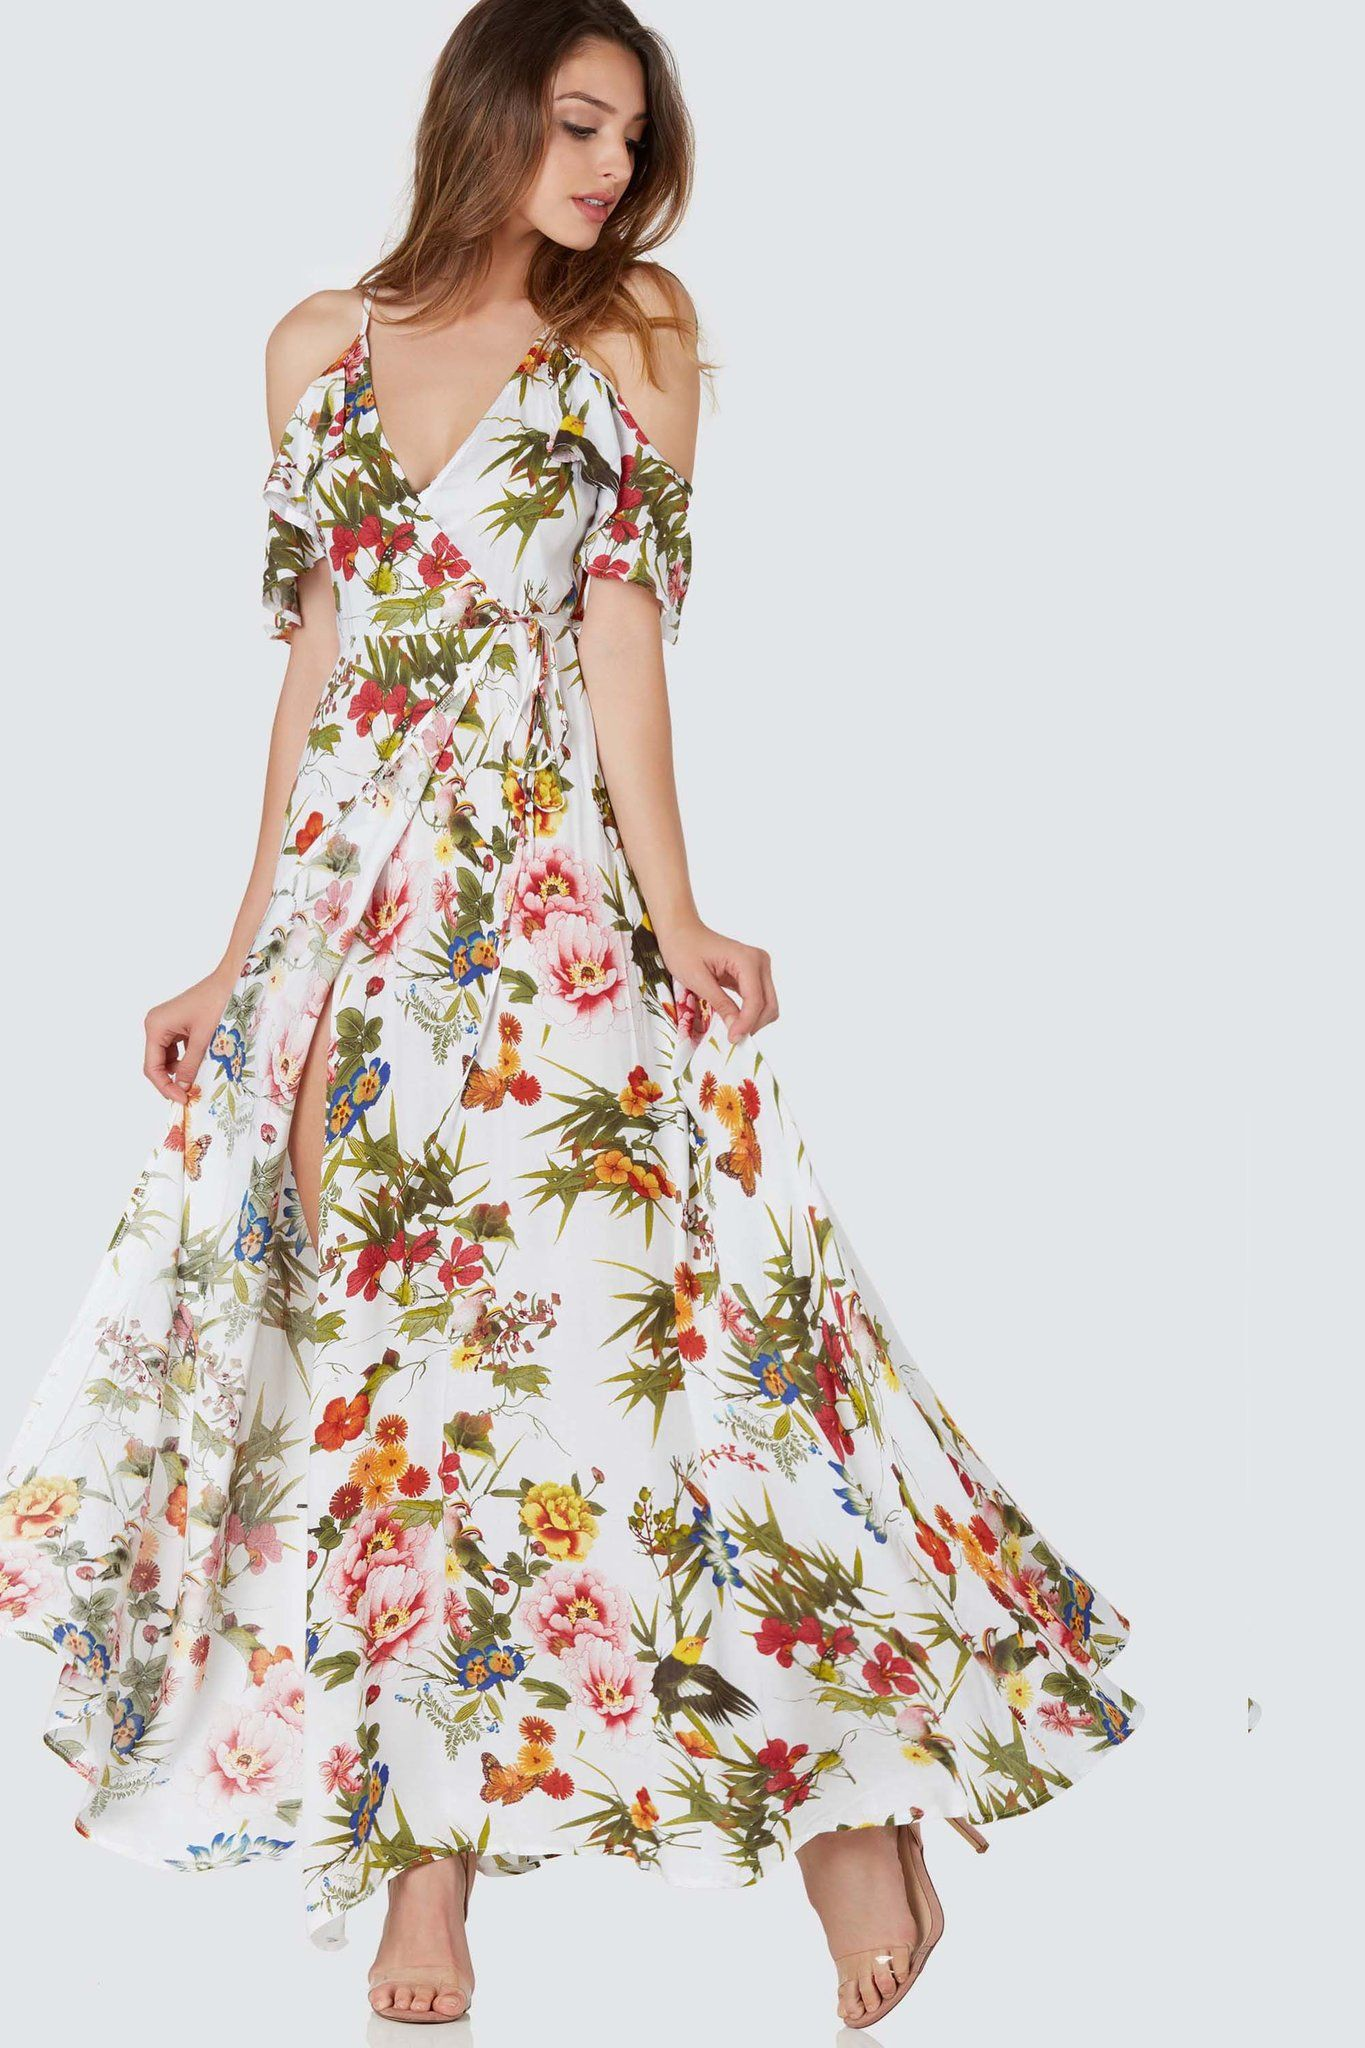 Flowy cold shoulder maxi dress with colorful floral patterns ...